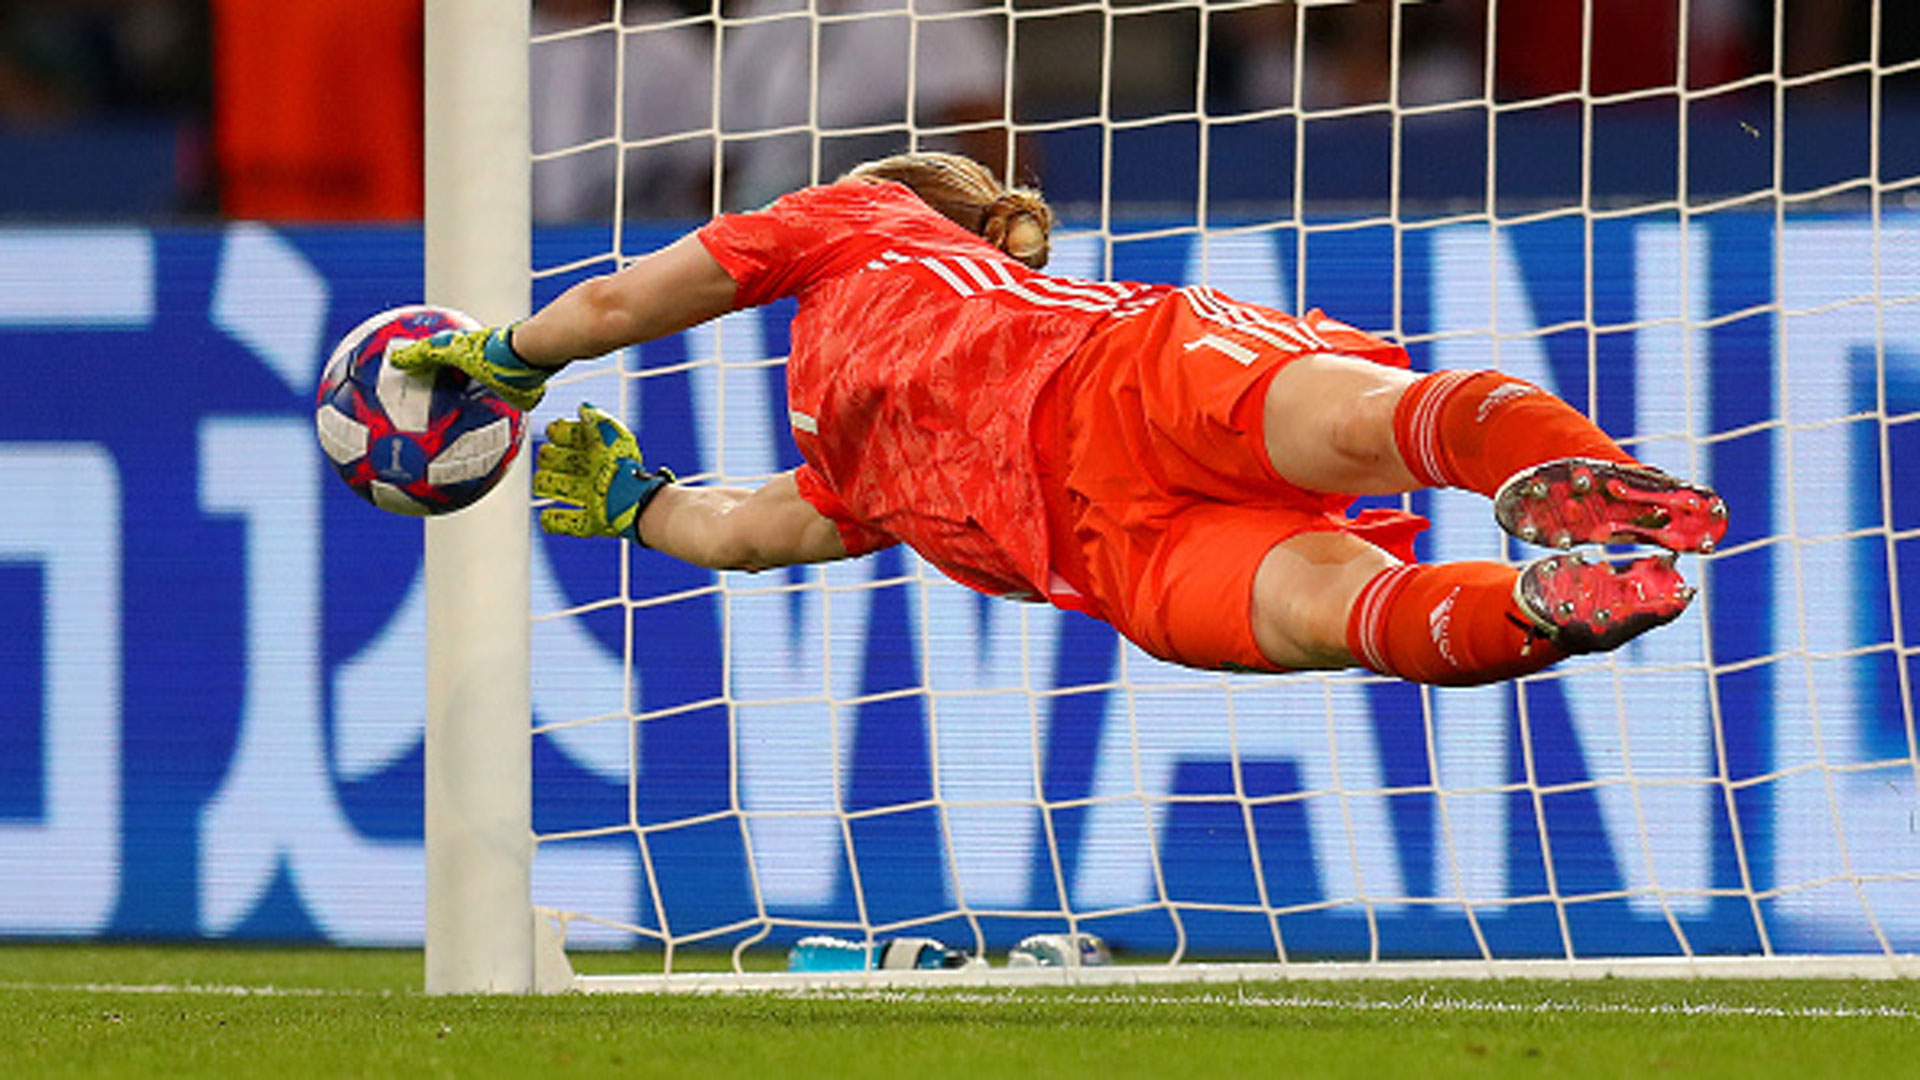 22b10bae9 Must See: Lindahl makes spectacular diving save on Beckie penalty kick -  Video - TSN